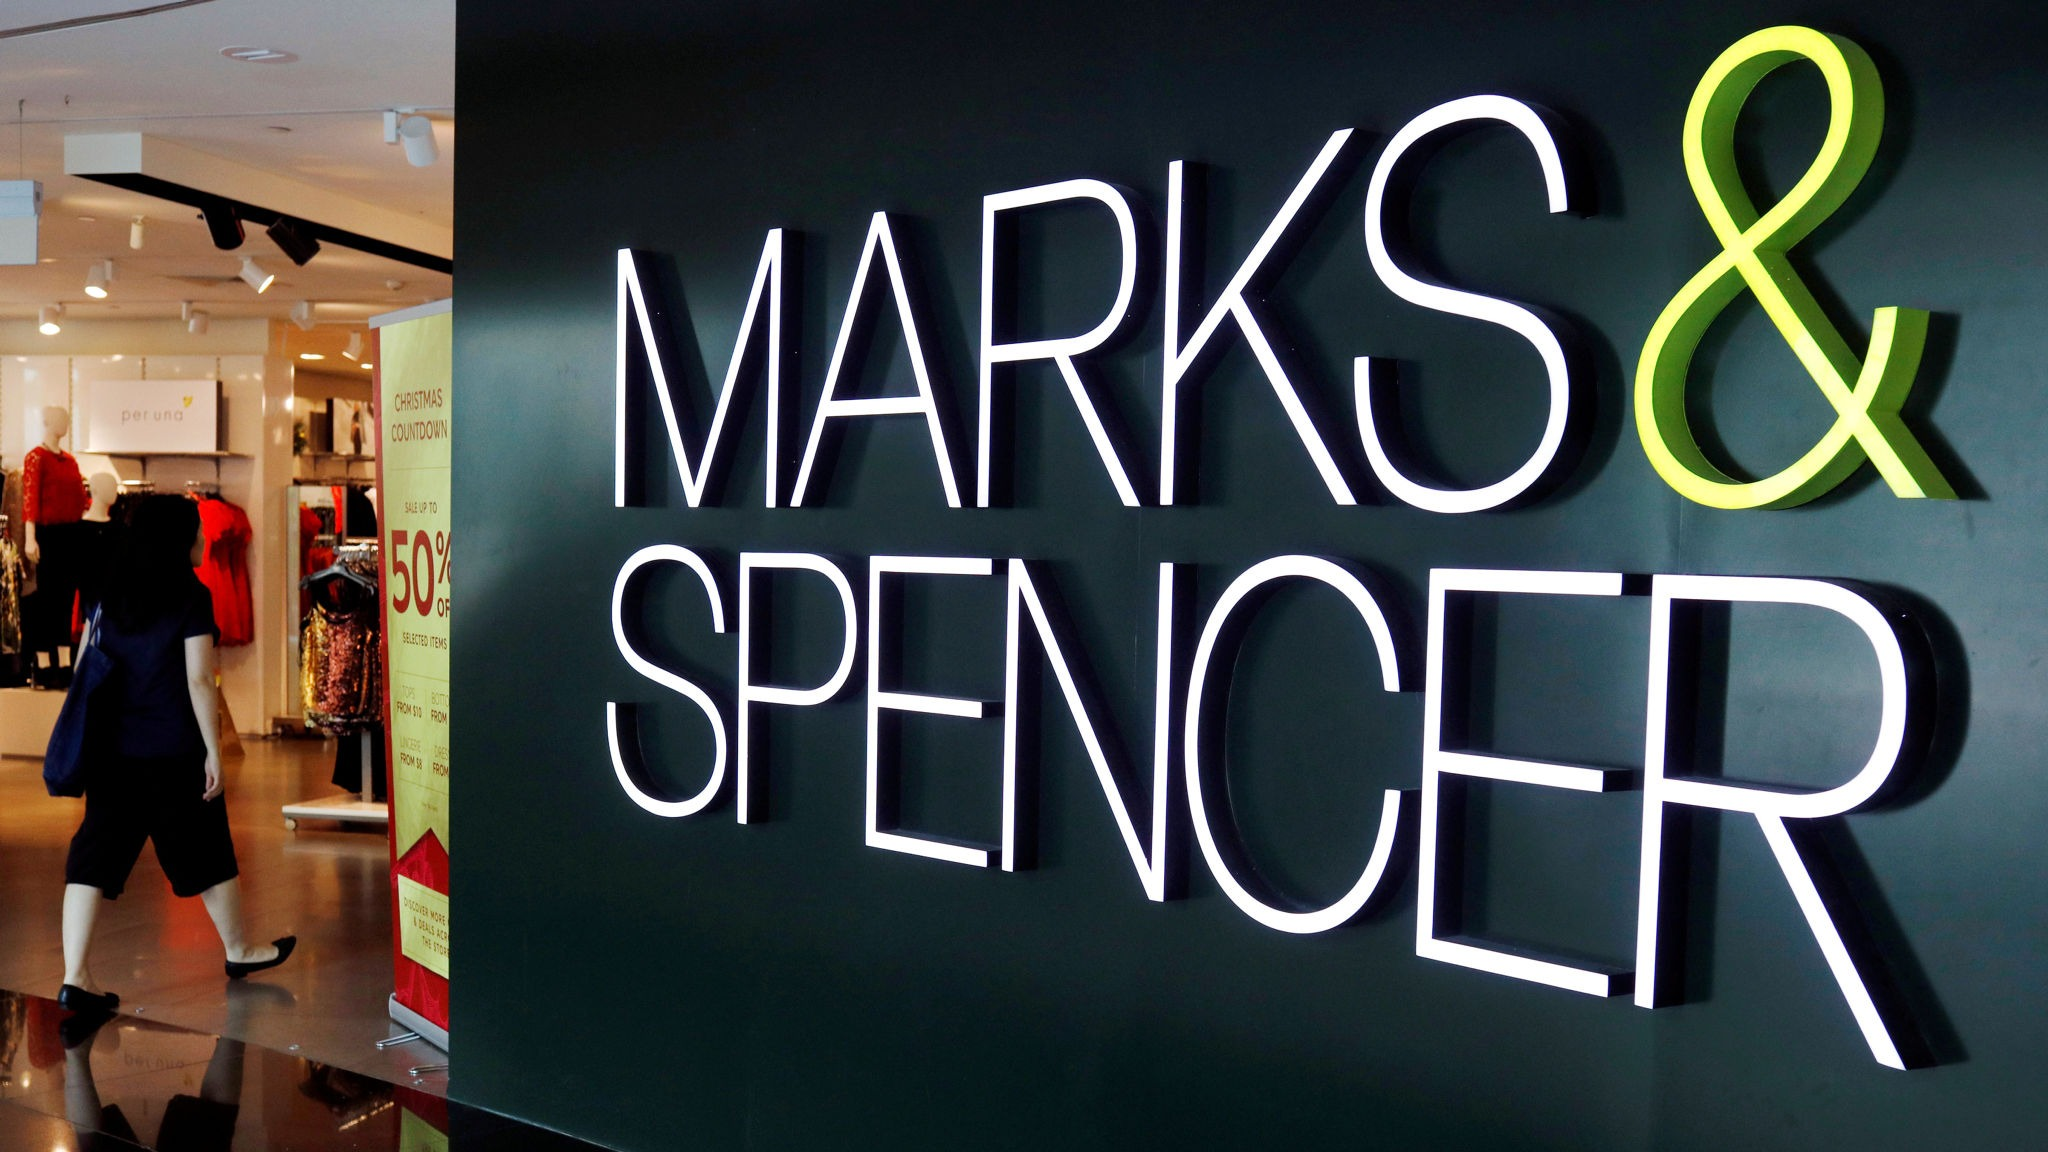 Marks & Spencer To Use Digital Product For Testing Purpose